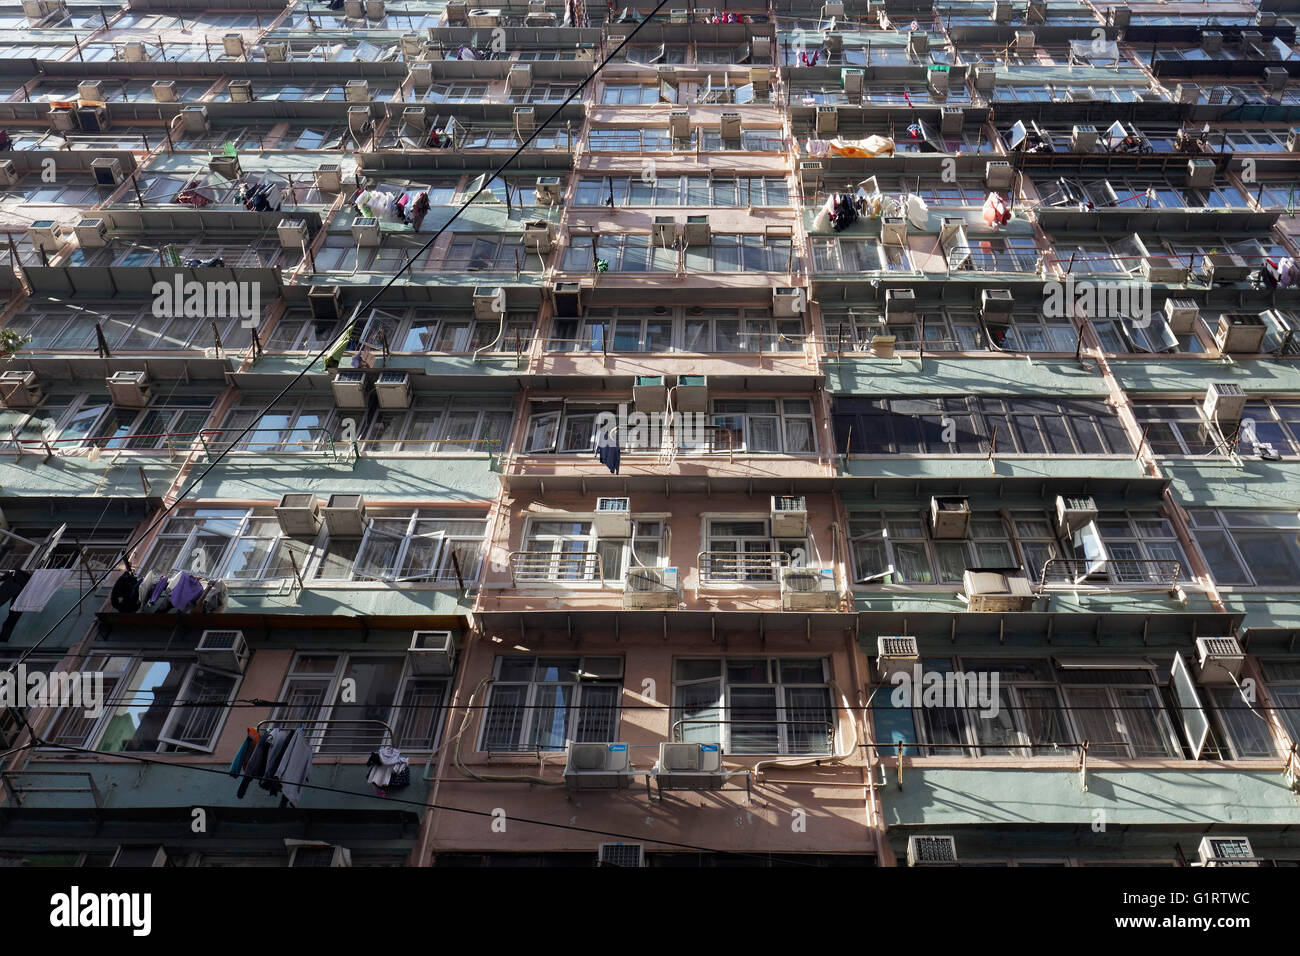 Old apartment block with cheap rented flats, Public Housing, Chun Yeung Street, North Point district, Hong Kong - Stock Image